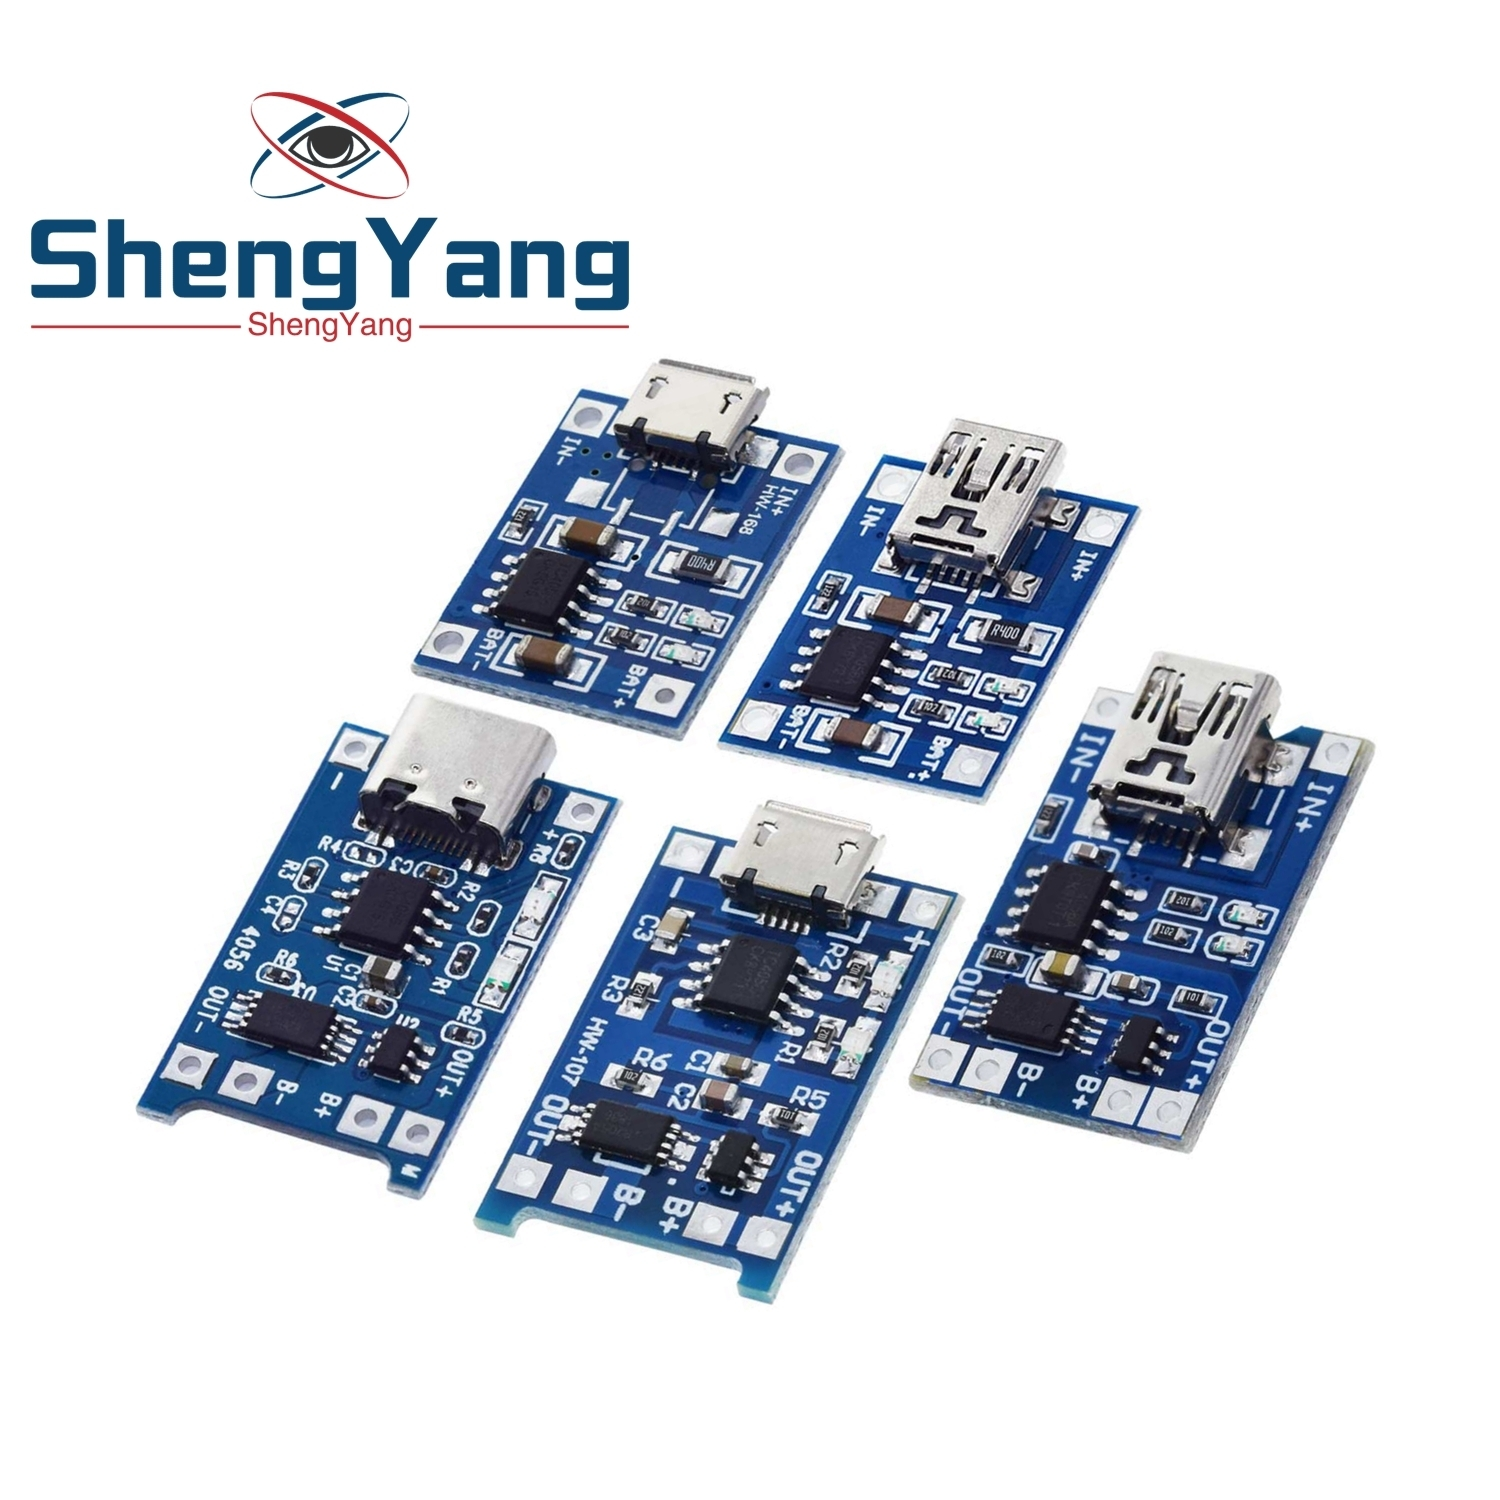 5V 1A 18650 TP4056 Lithium Battery Charger Module Charging Board With Protection Dual Functions 1A Li-ion